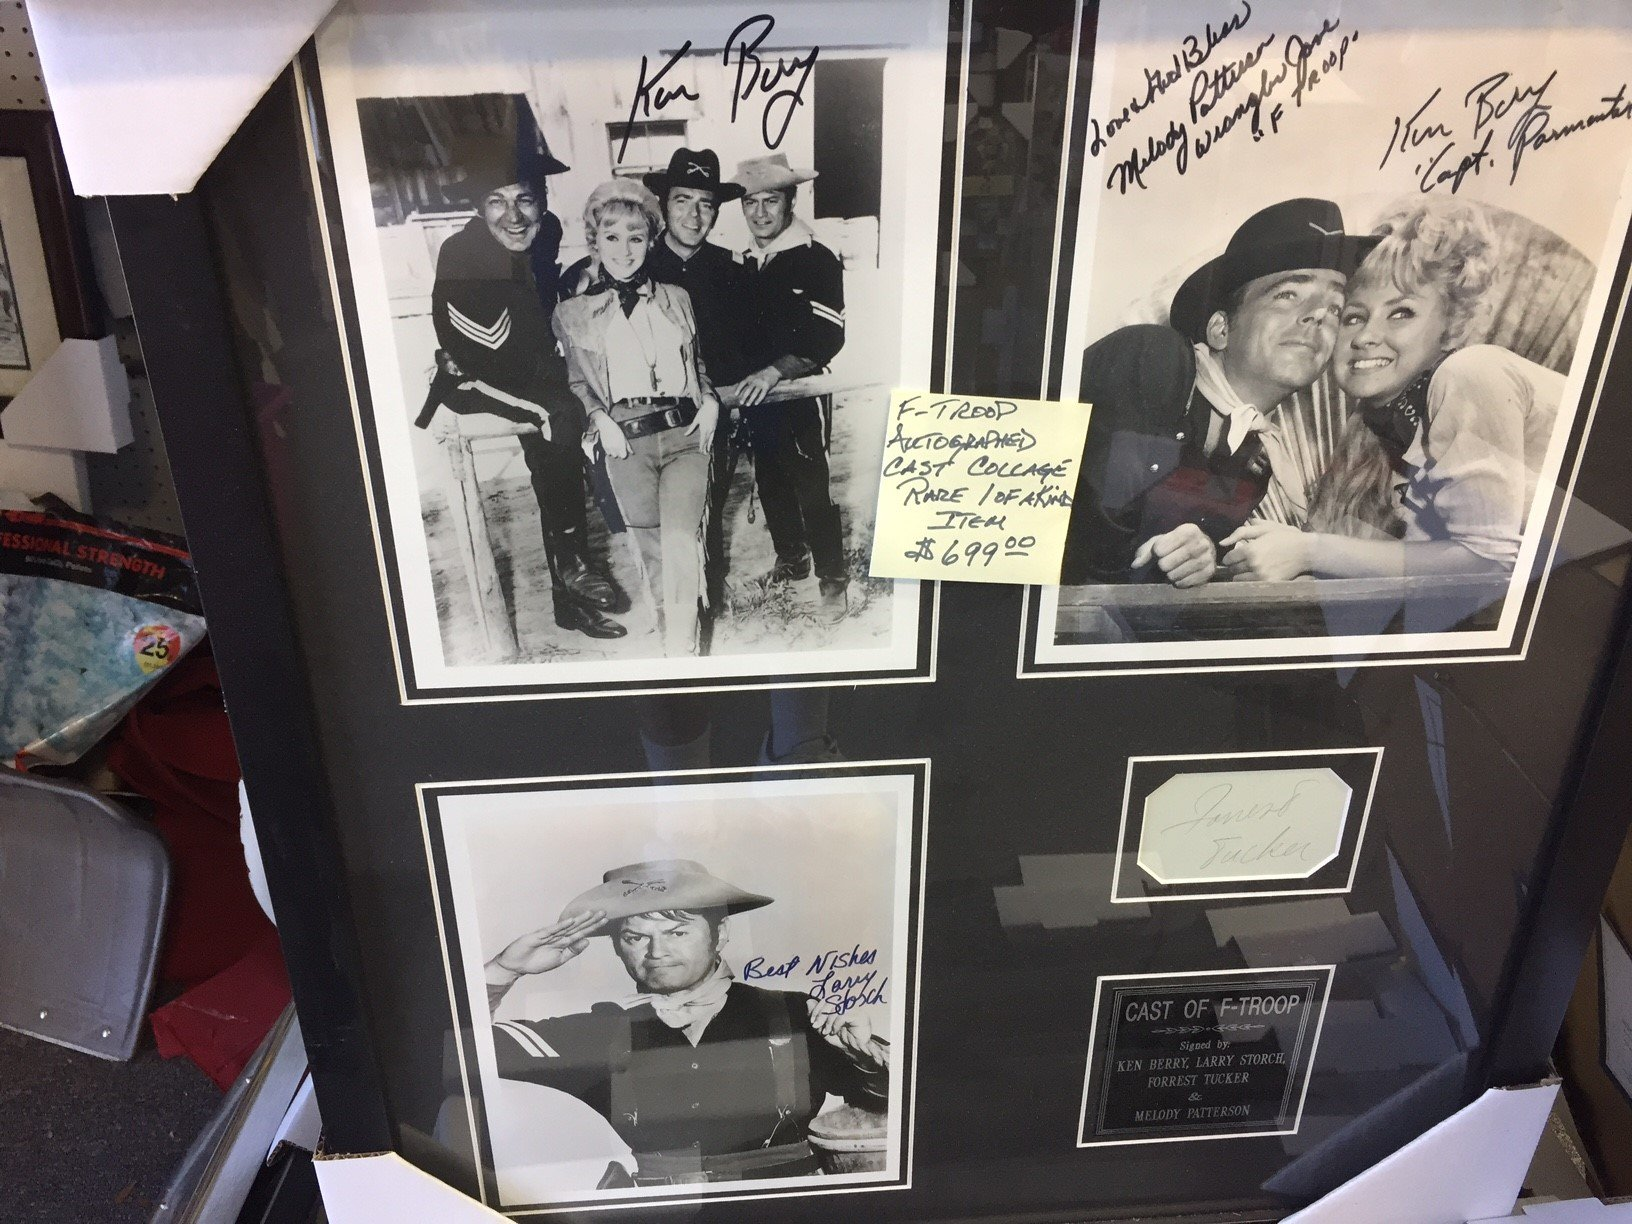 Cast of F-Troop Memorabilia